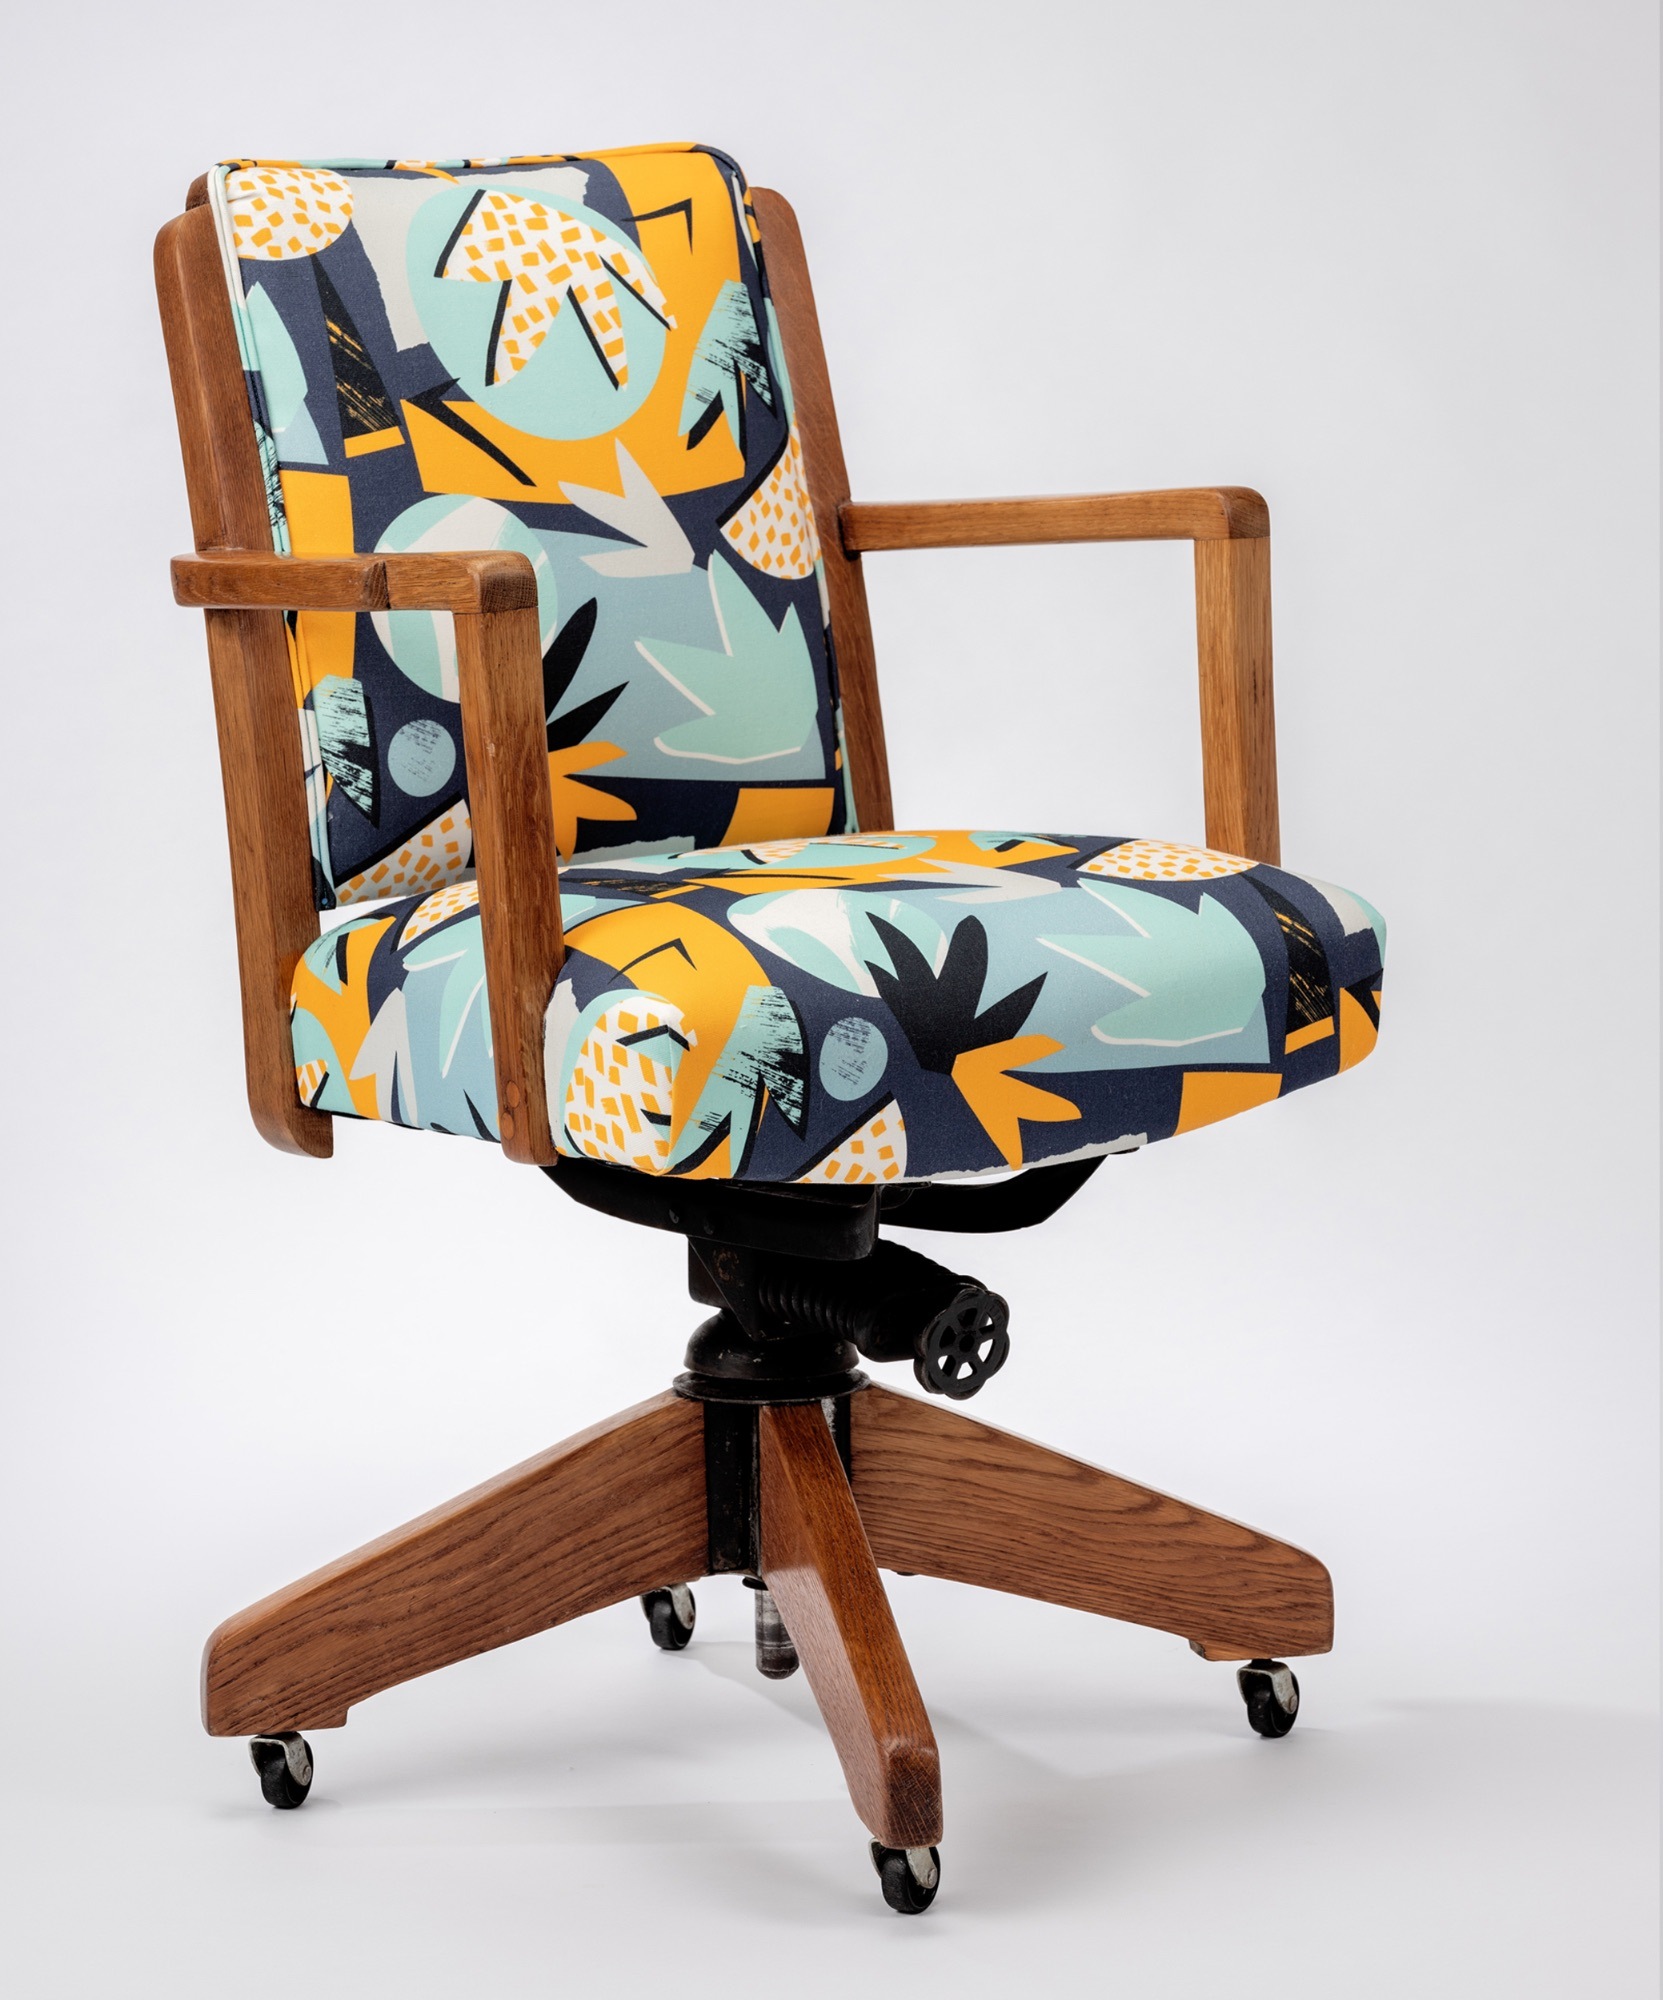 vintage desk chair in Lizzie Hillier  fabric by Spring Upholstery Brighton